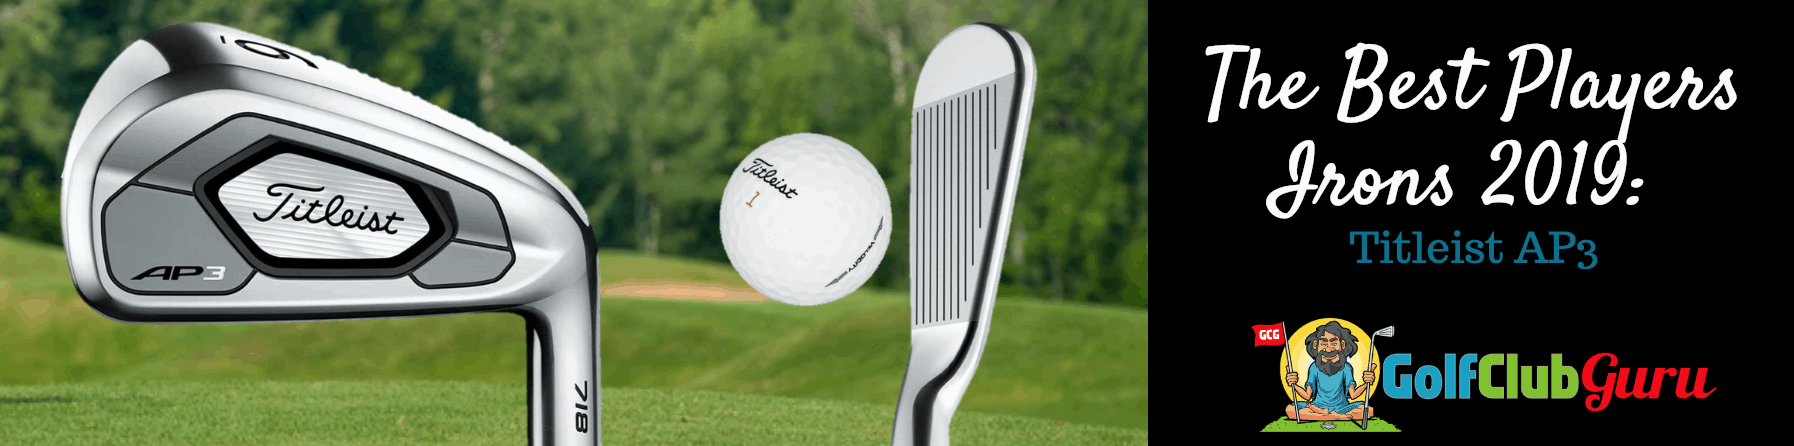 titleist ap3 718 players irons top performing | Golf Club Guru